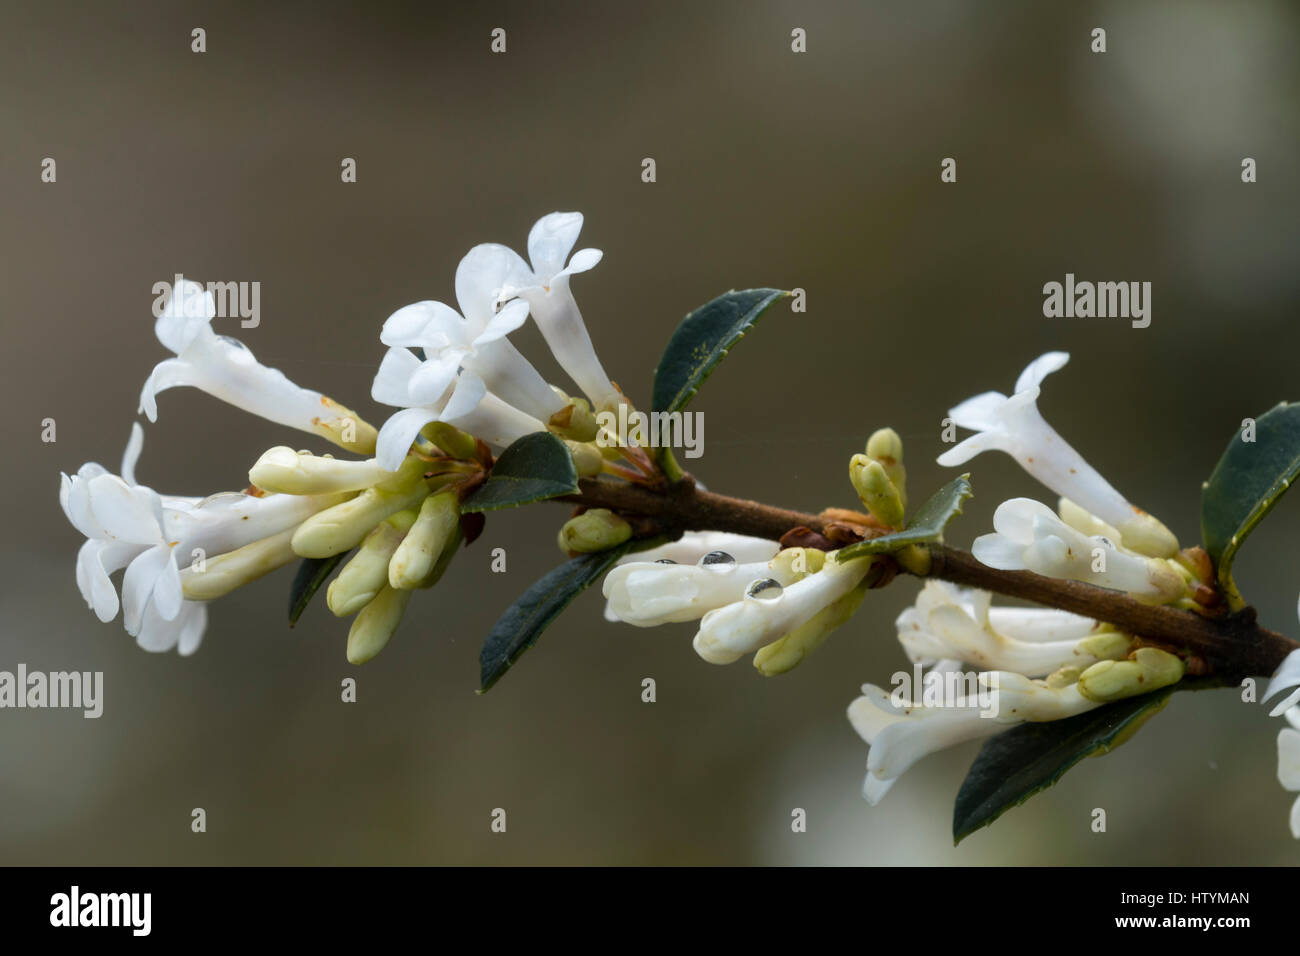 Fragrant white spring flowers adorn the drooping branches of the fragrant white spring flowers adorn the drooping branches of the evergreen shrub osmanthus delavayi mightylinksfo